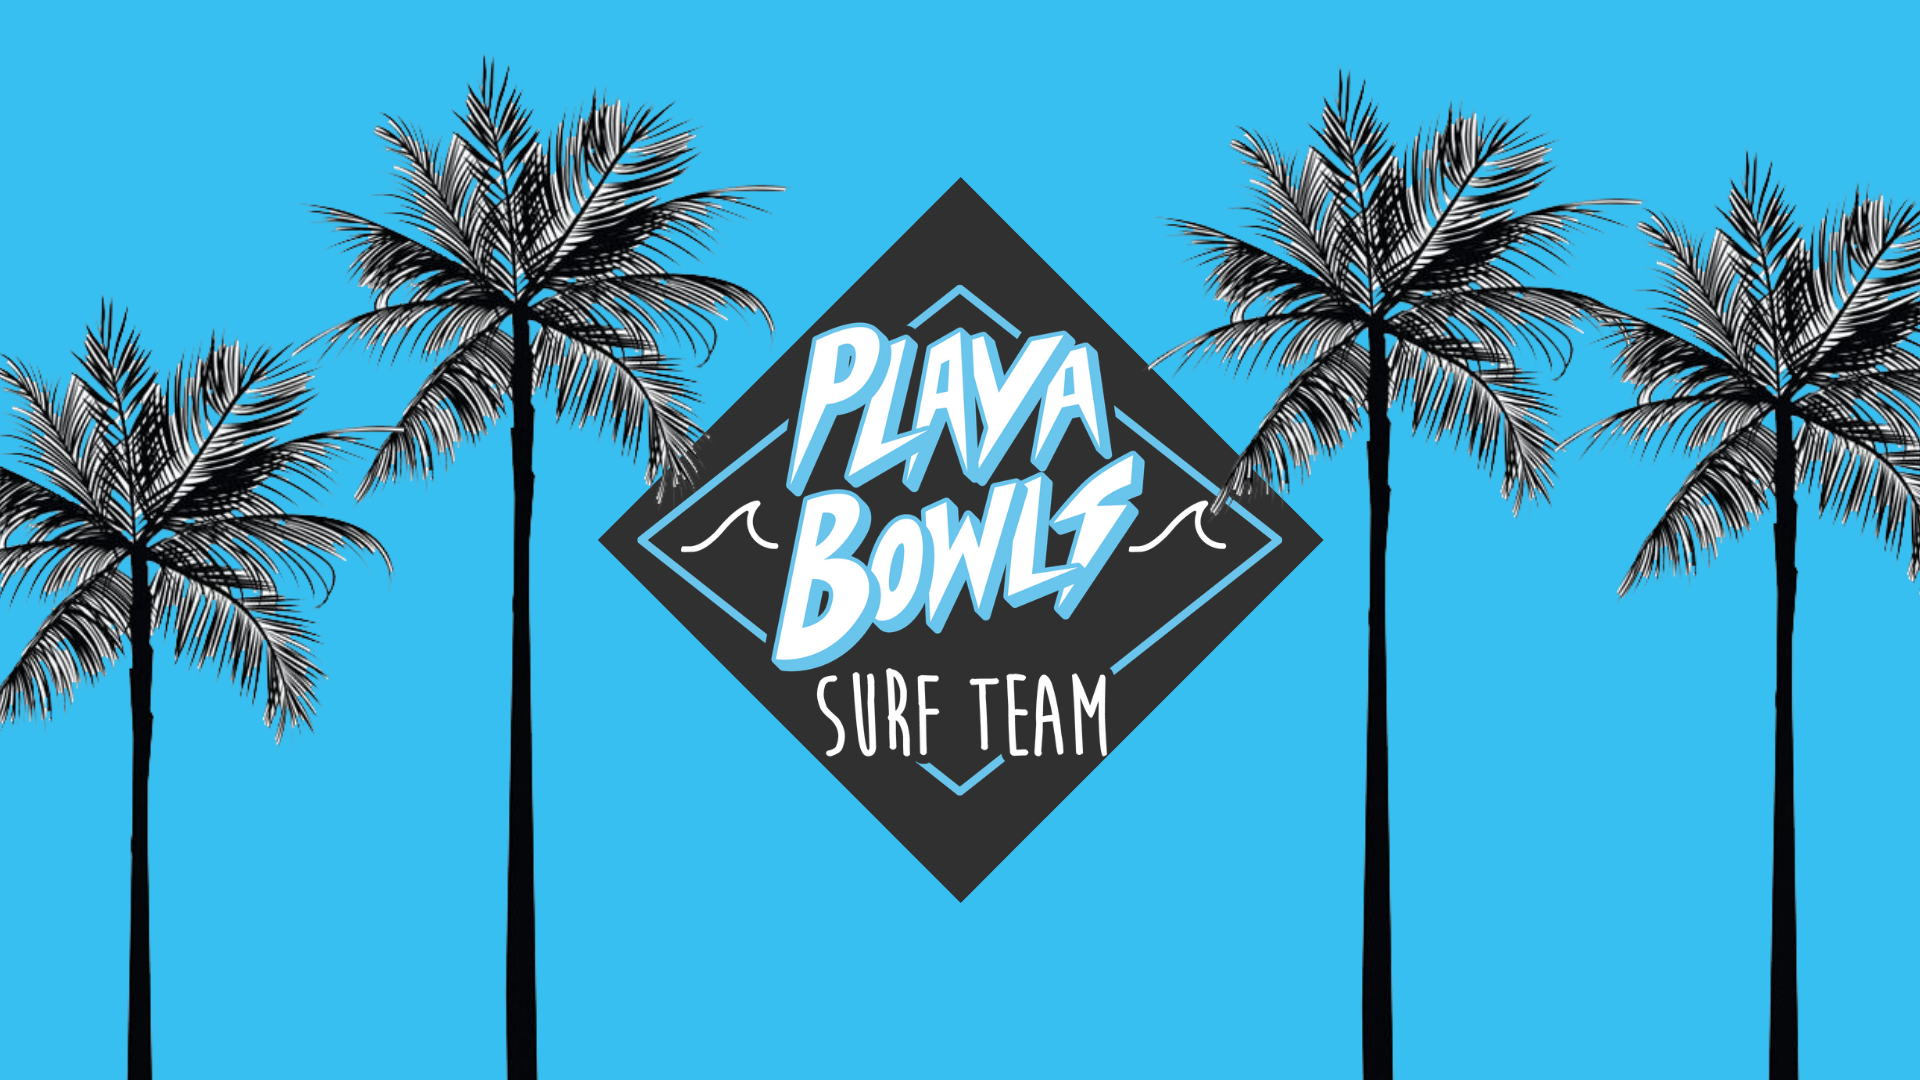 It's official check out the Playa Bowls Surf Team!